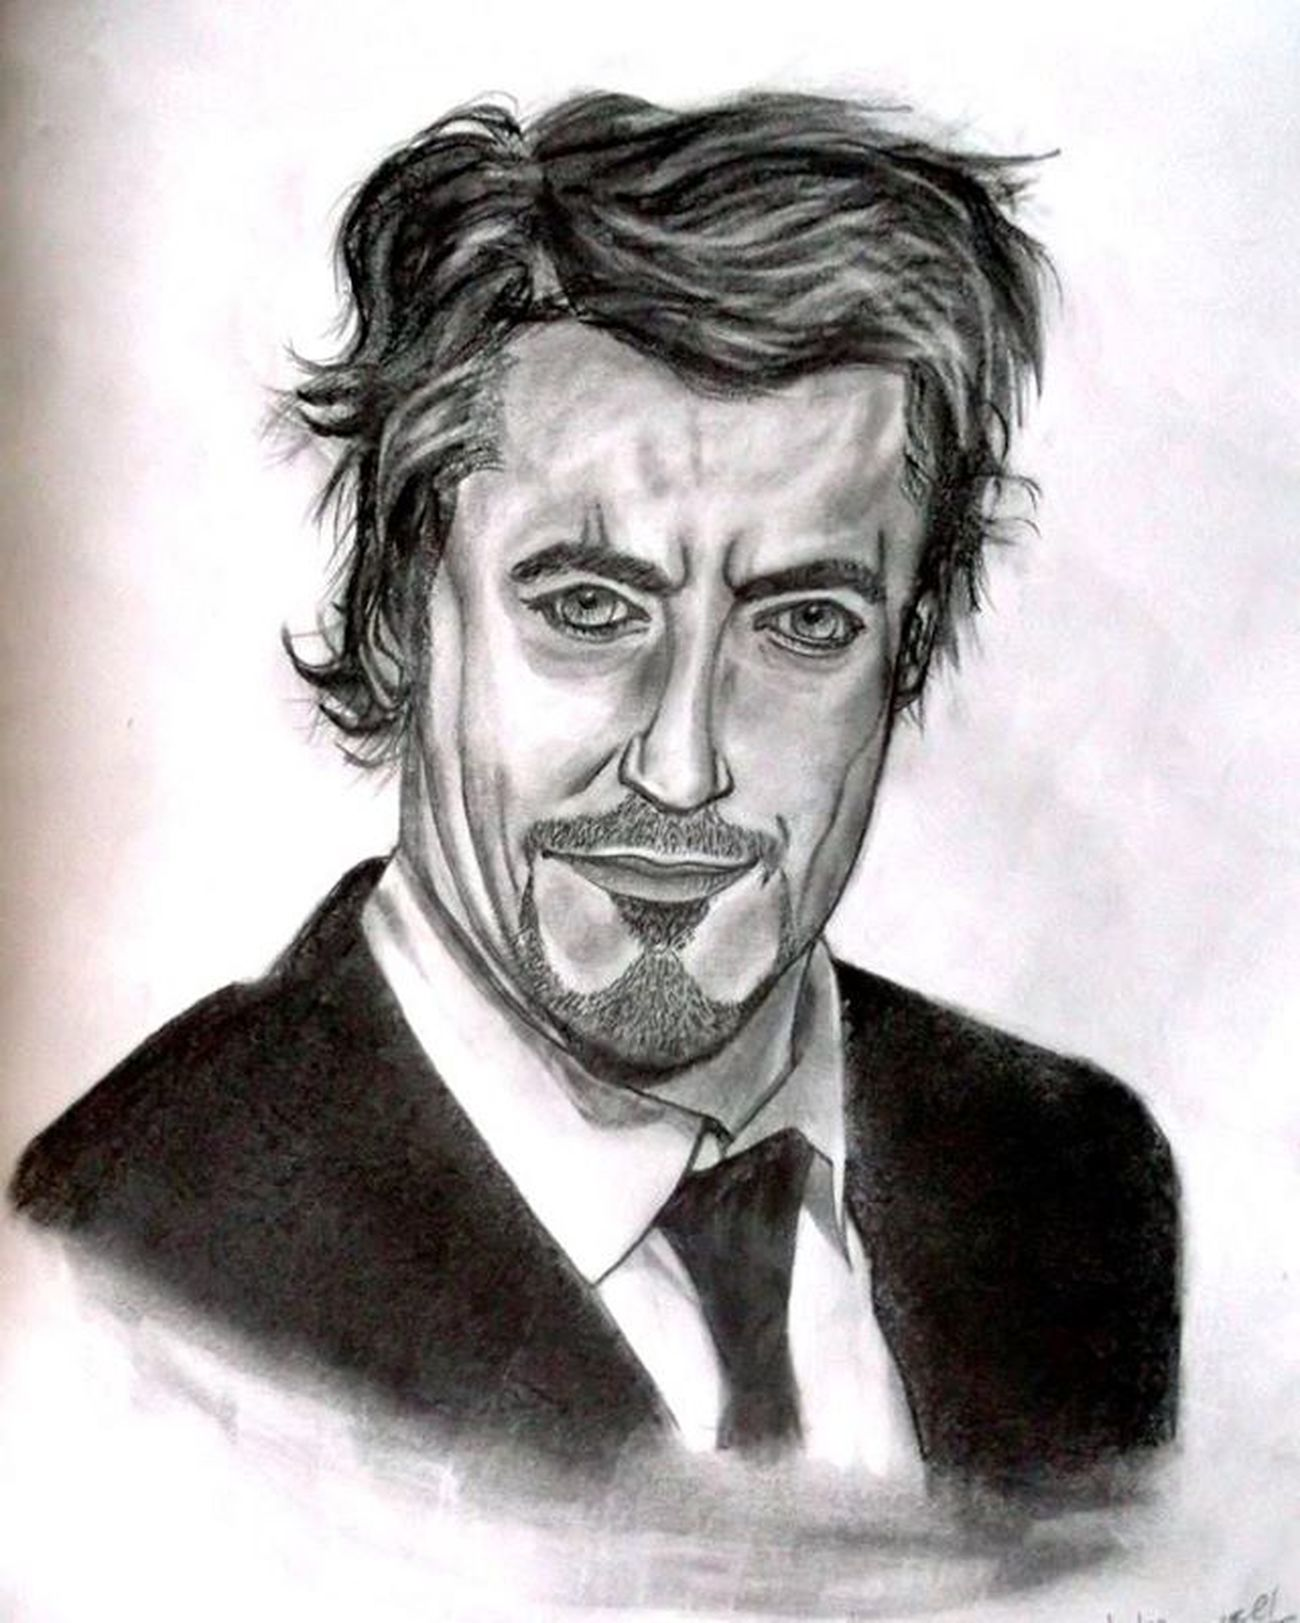 MY FAVOURITE ACTOR! Robertdowneyjr RobertDowney Ironman Avengers Billionare Philanthropist Genius Stud Handsome Official Suit Suitandtie Goatie Pencil Pencilsketch Inktober The_enchanted_art Shading  Passion Hobby Coverarts Imagination Dedication WORKHARD Cars girls hot